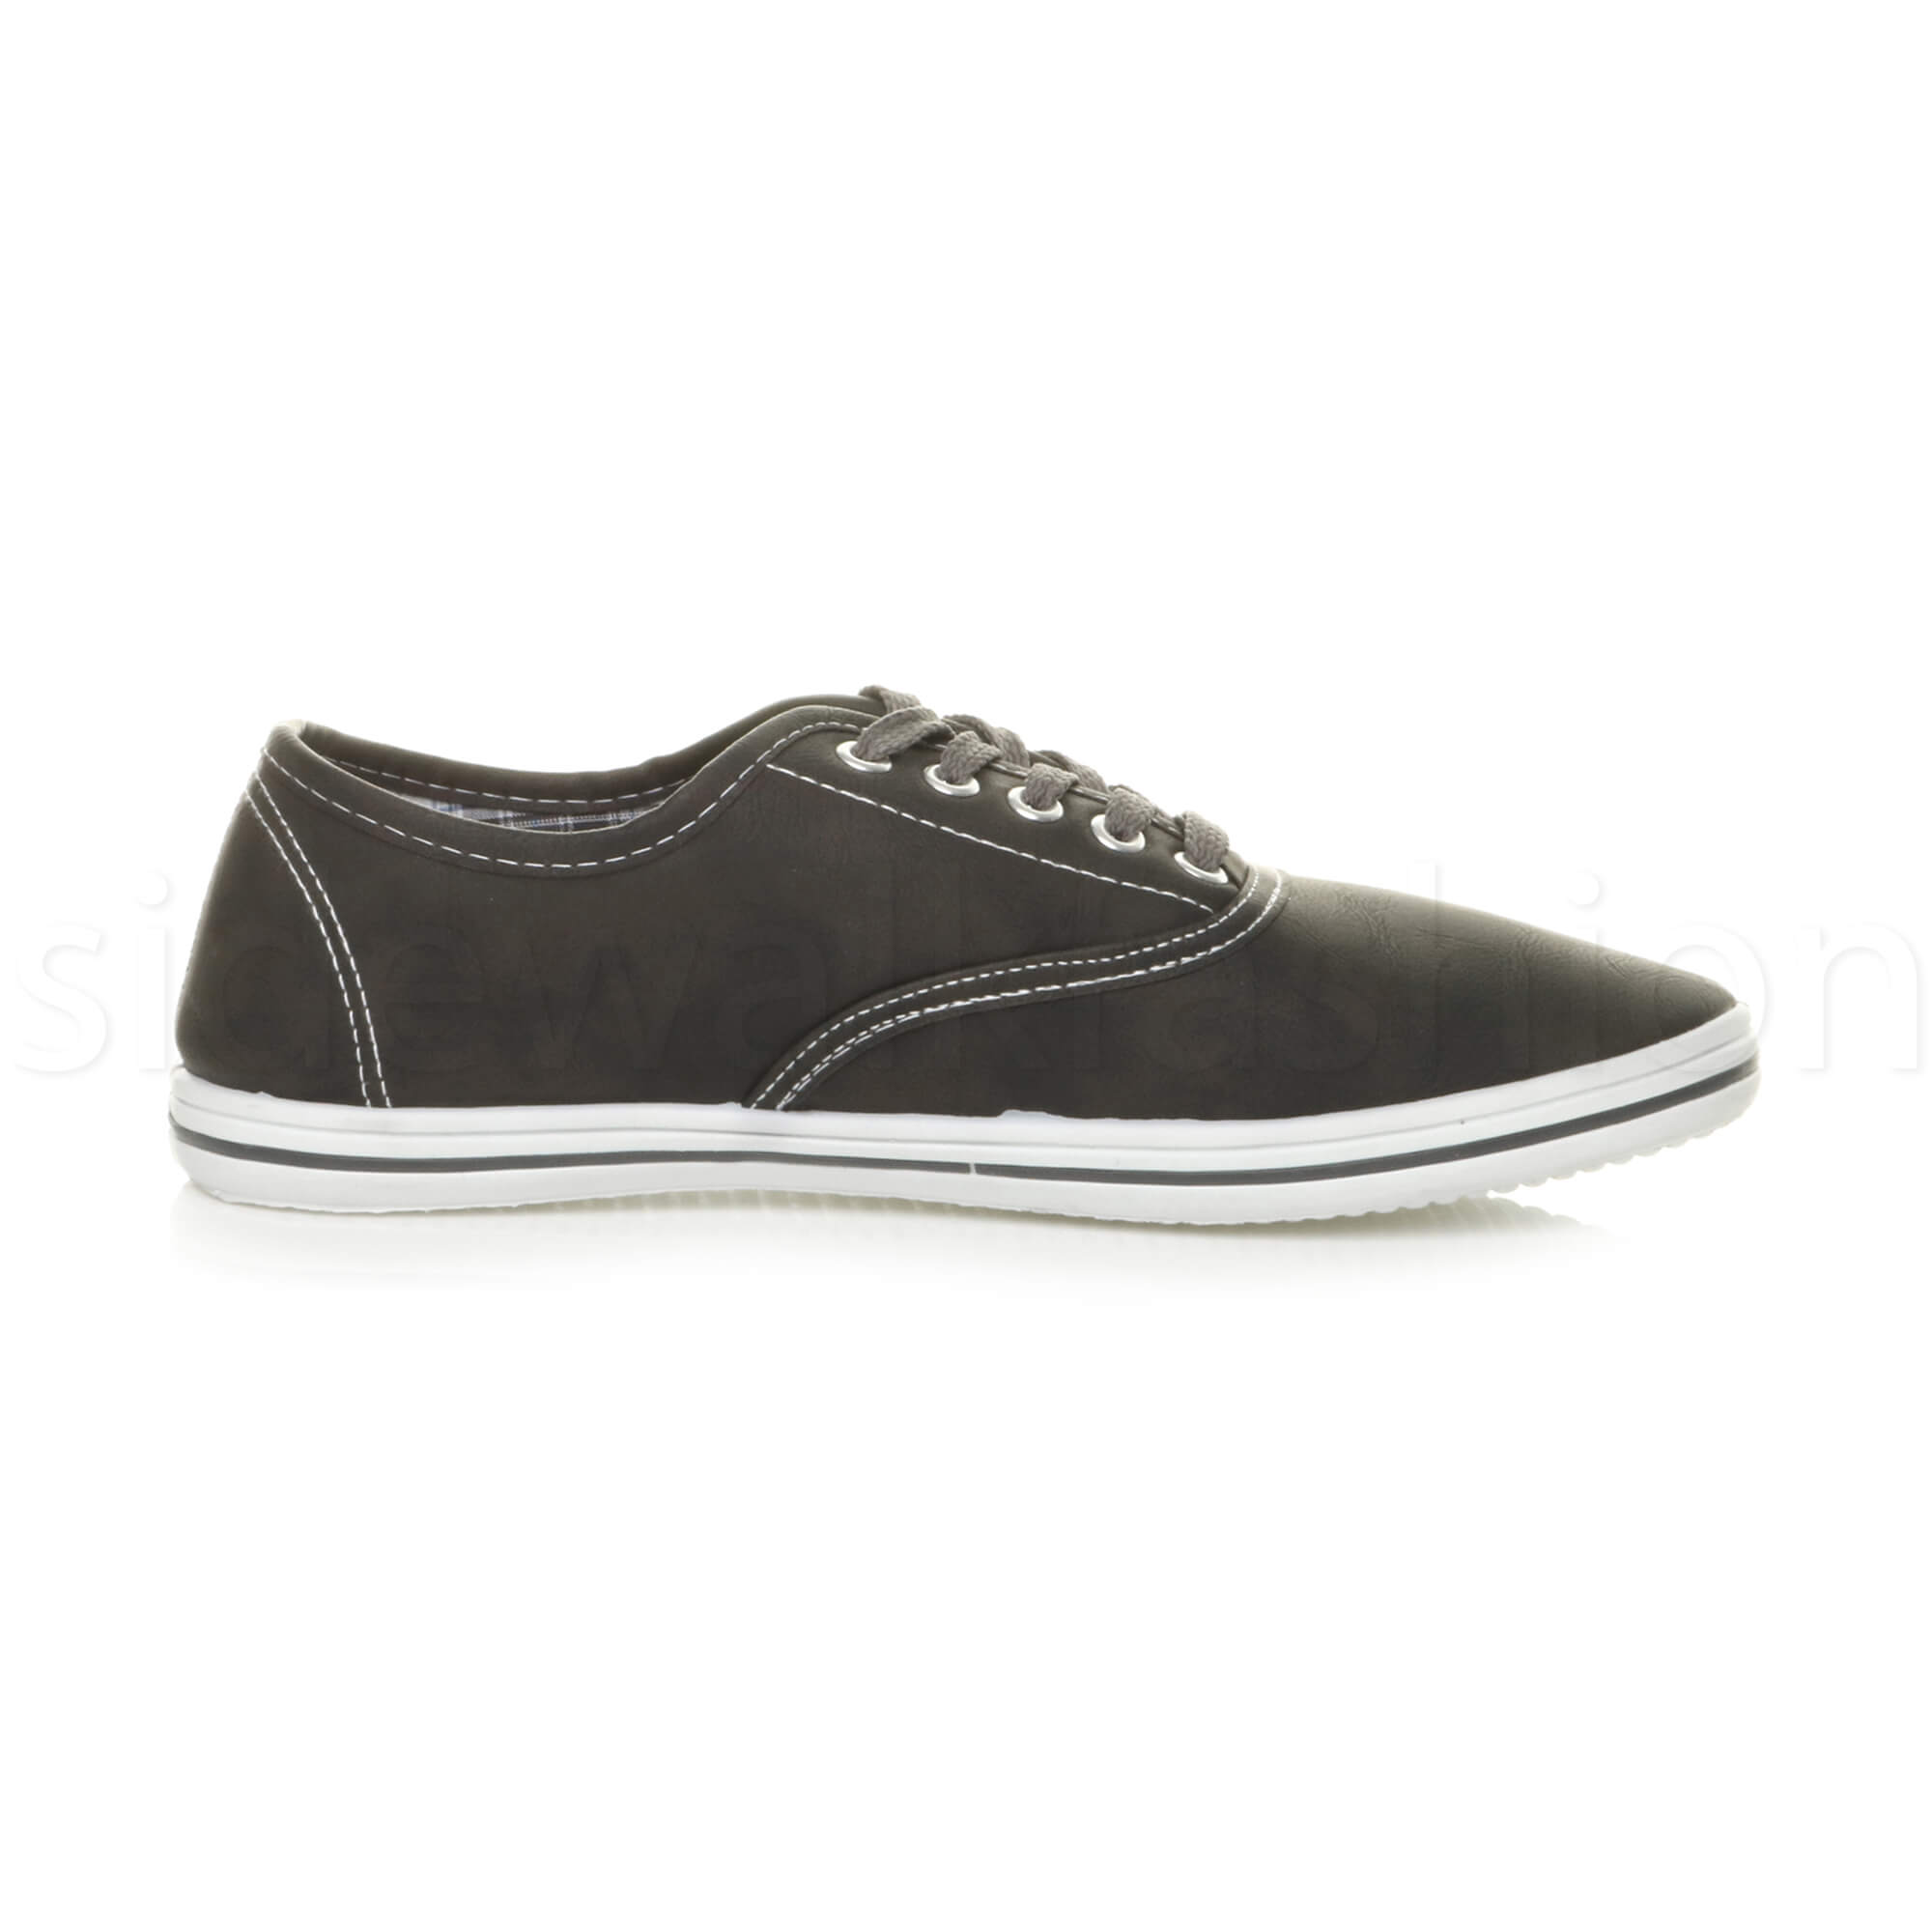 Mens-flat-lace-up-work-smart-plain-casual-pump-plimsoles-trainers-shoes-size thumbnail 4